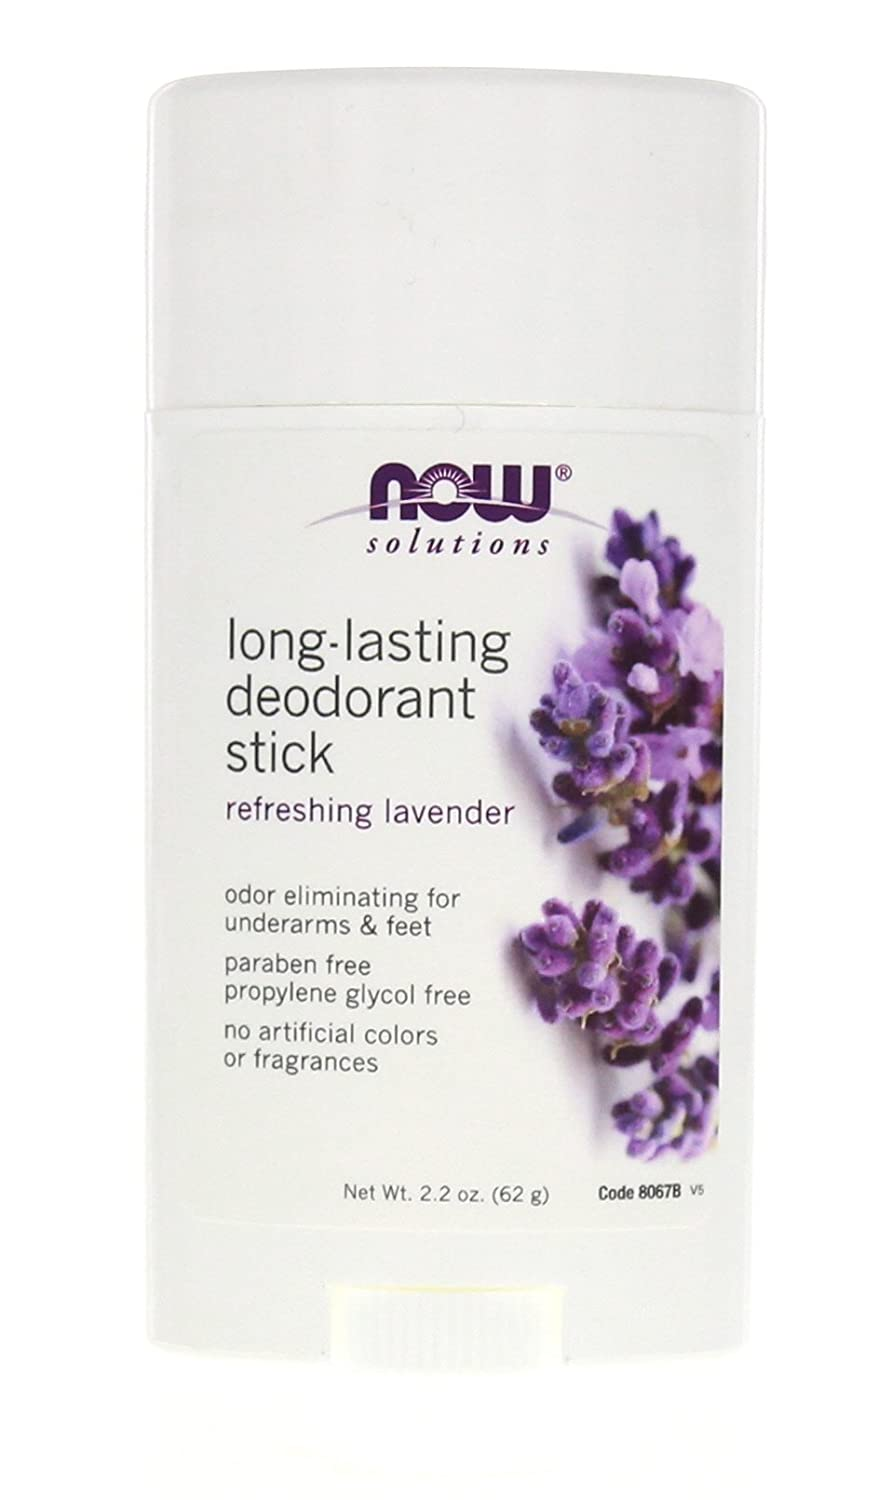 NOW Foods Deodorant Stick Free shipping on posting reviews OZ Japan's largest assortment 2.2 Lasting Long